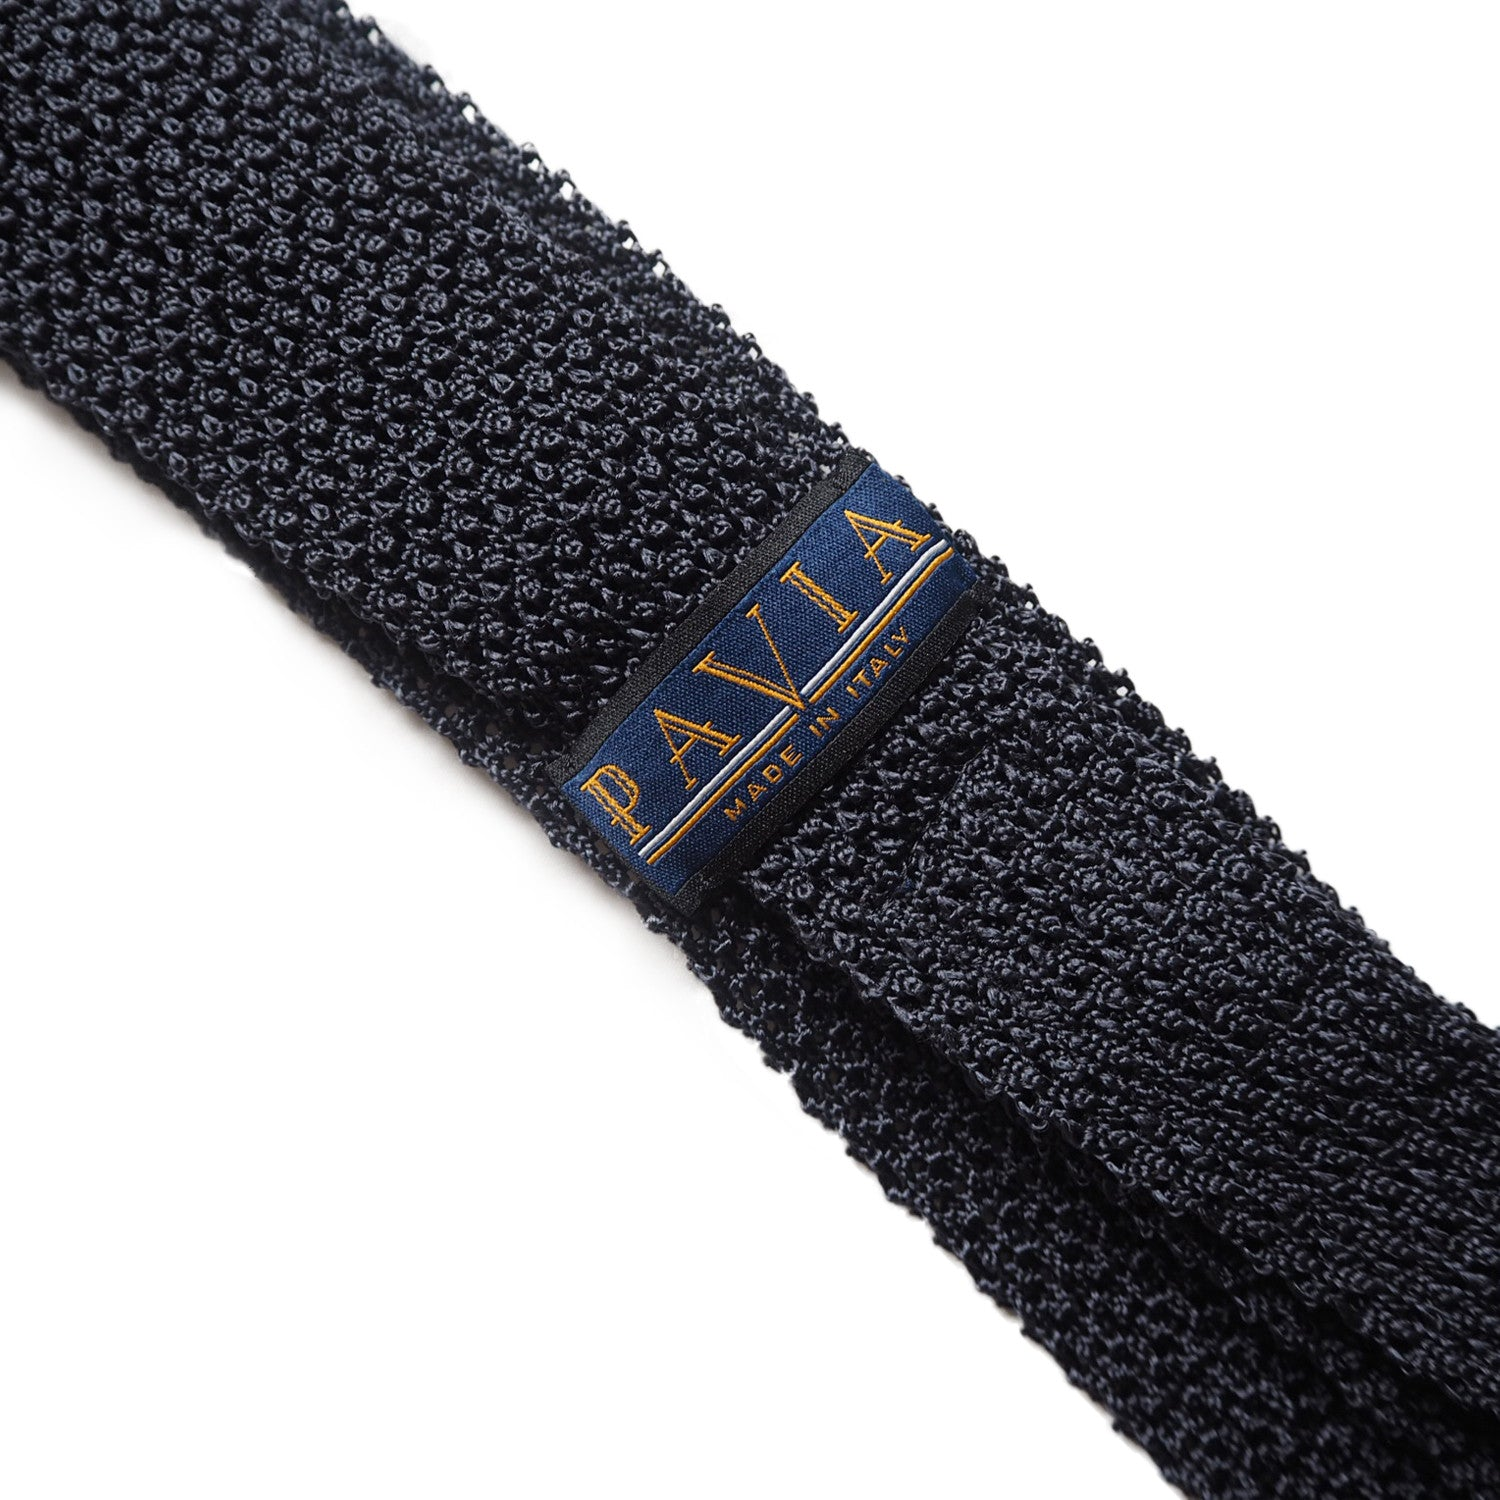 EXCLUSIVE BLACK KNIT TIE